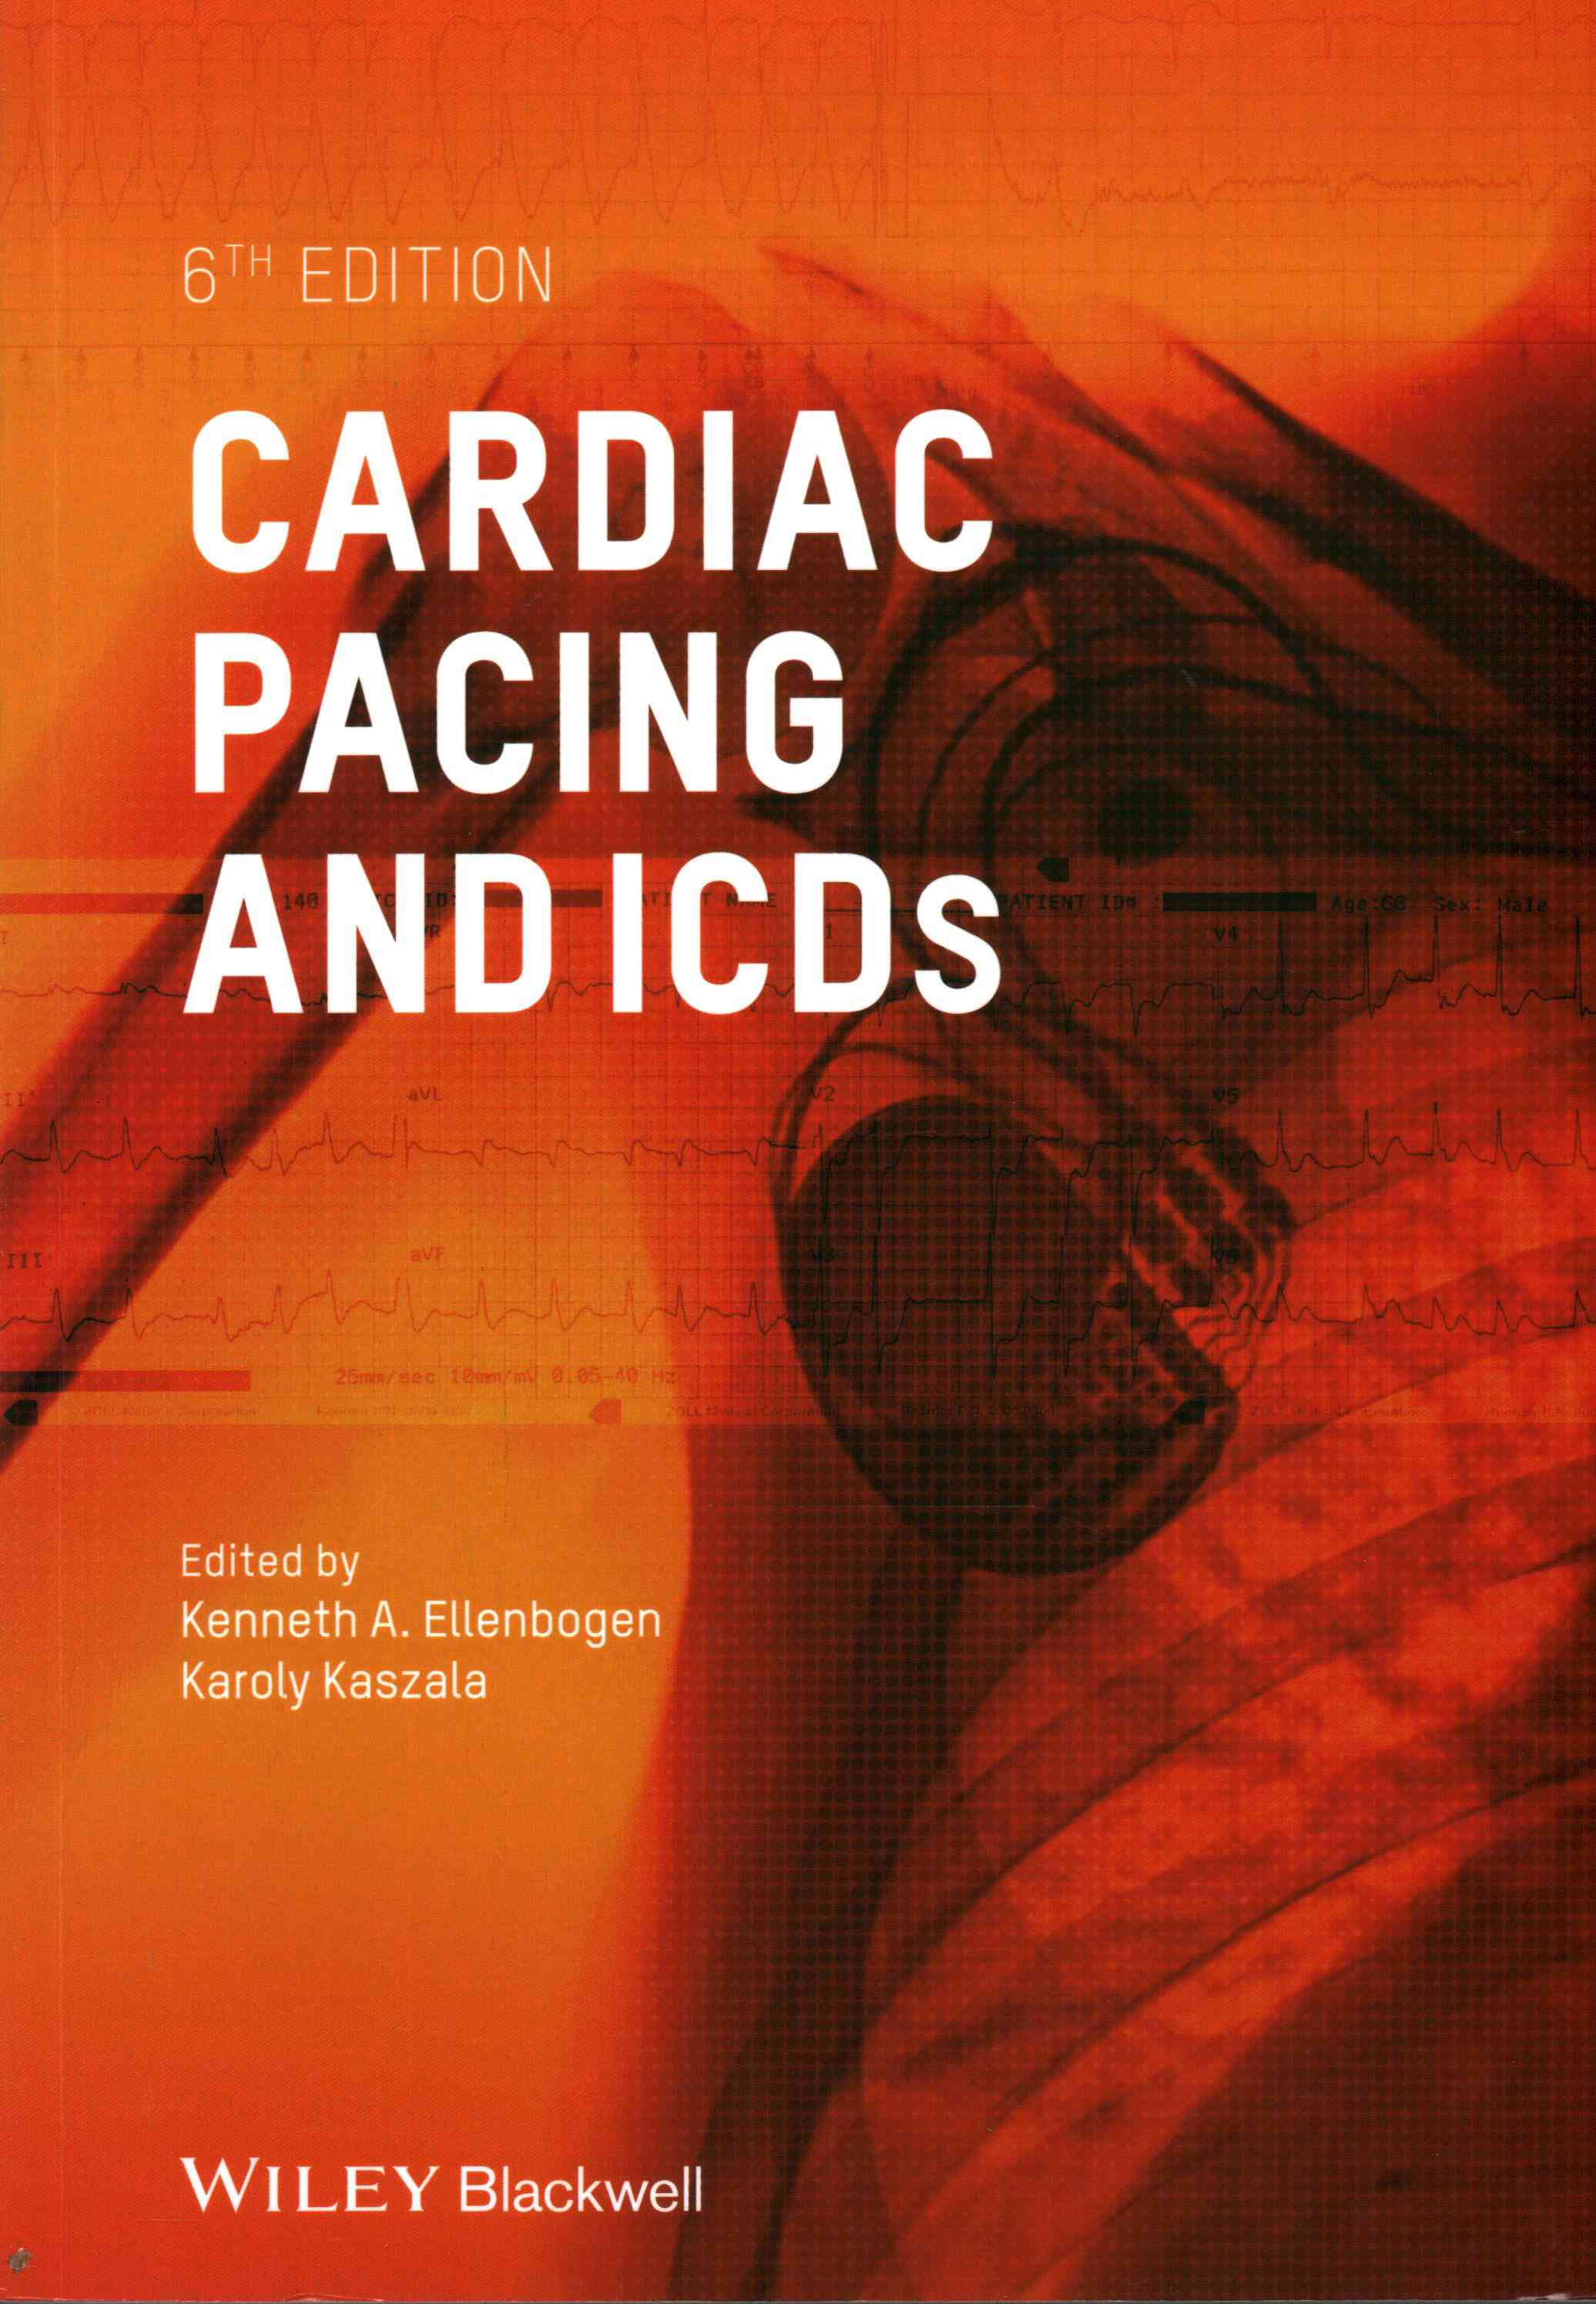 Cardiac Pacing and Icds By Ellenbogen, Kenneth A. (EDT)/ Kaszala, Karoly (EDT)